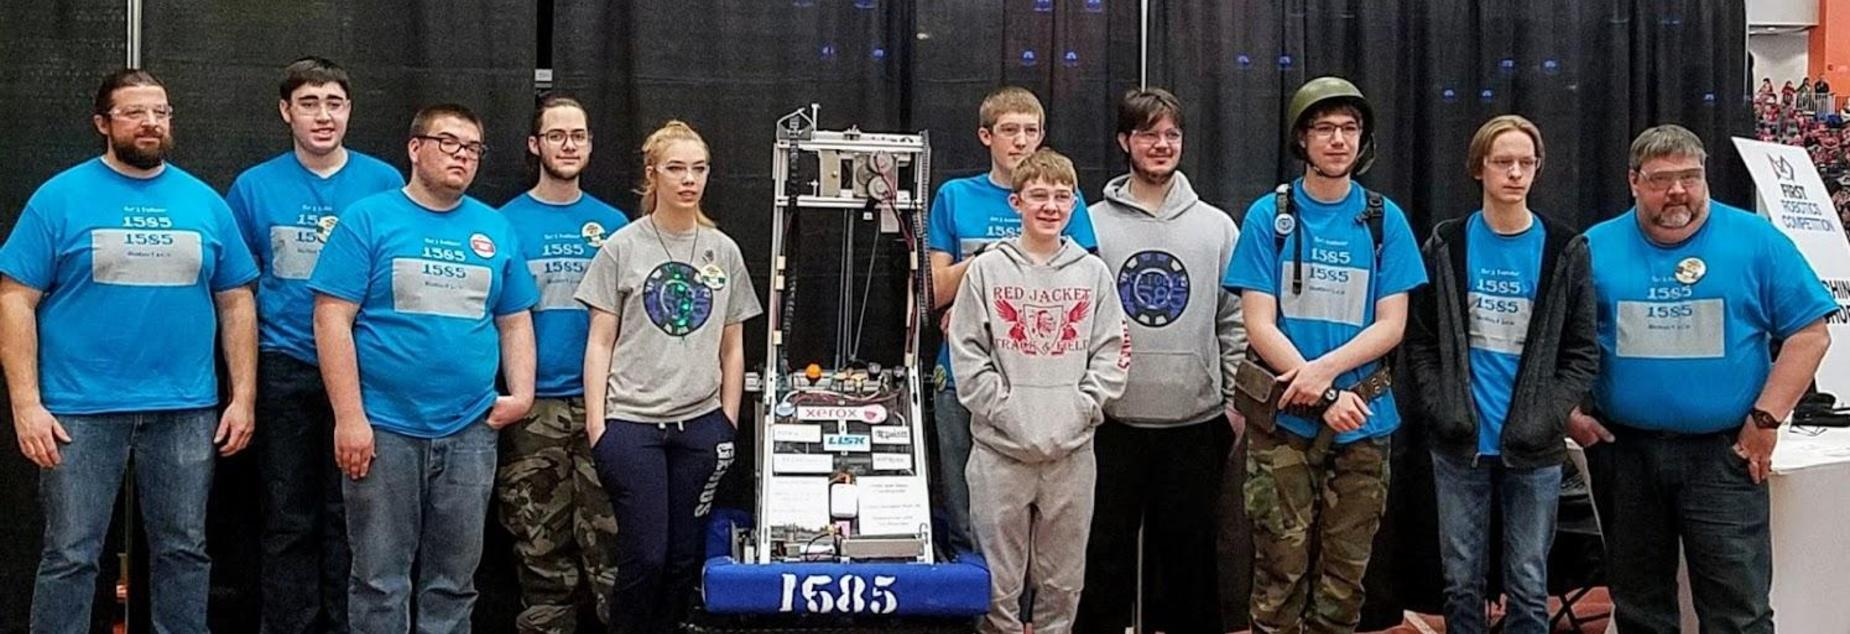 Robotics Team 2017-2018 Team Picture at RIT Competition March 2018